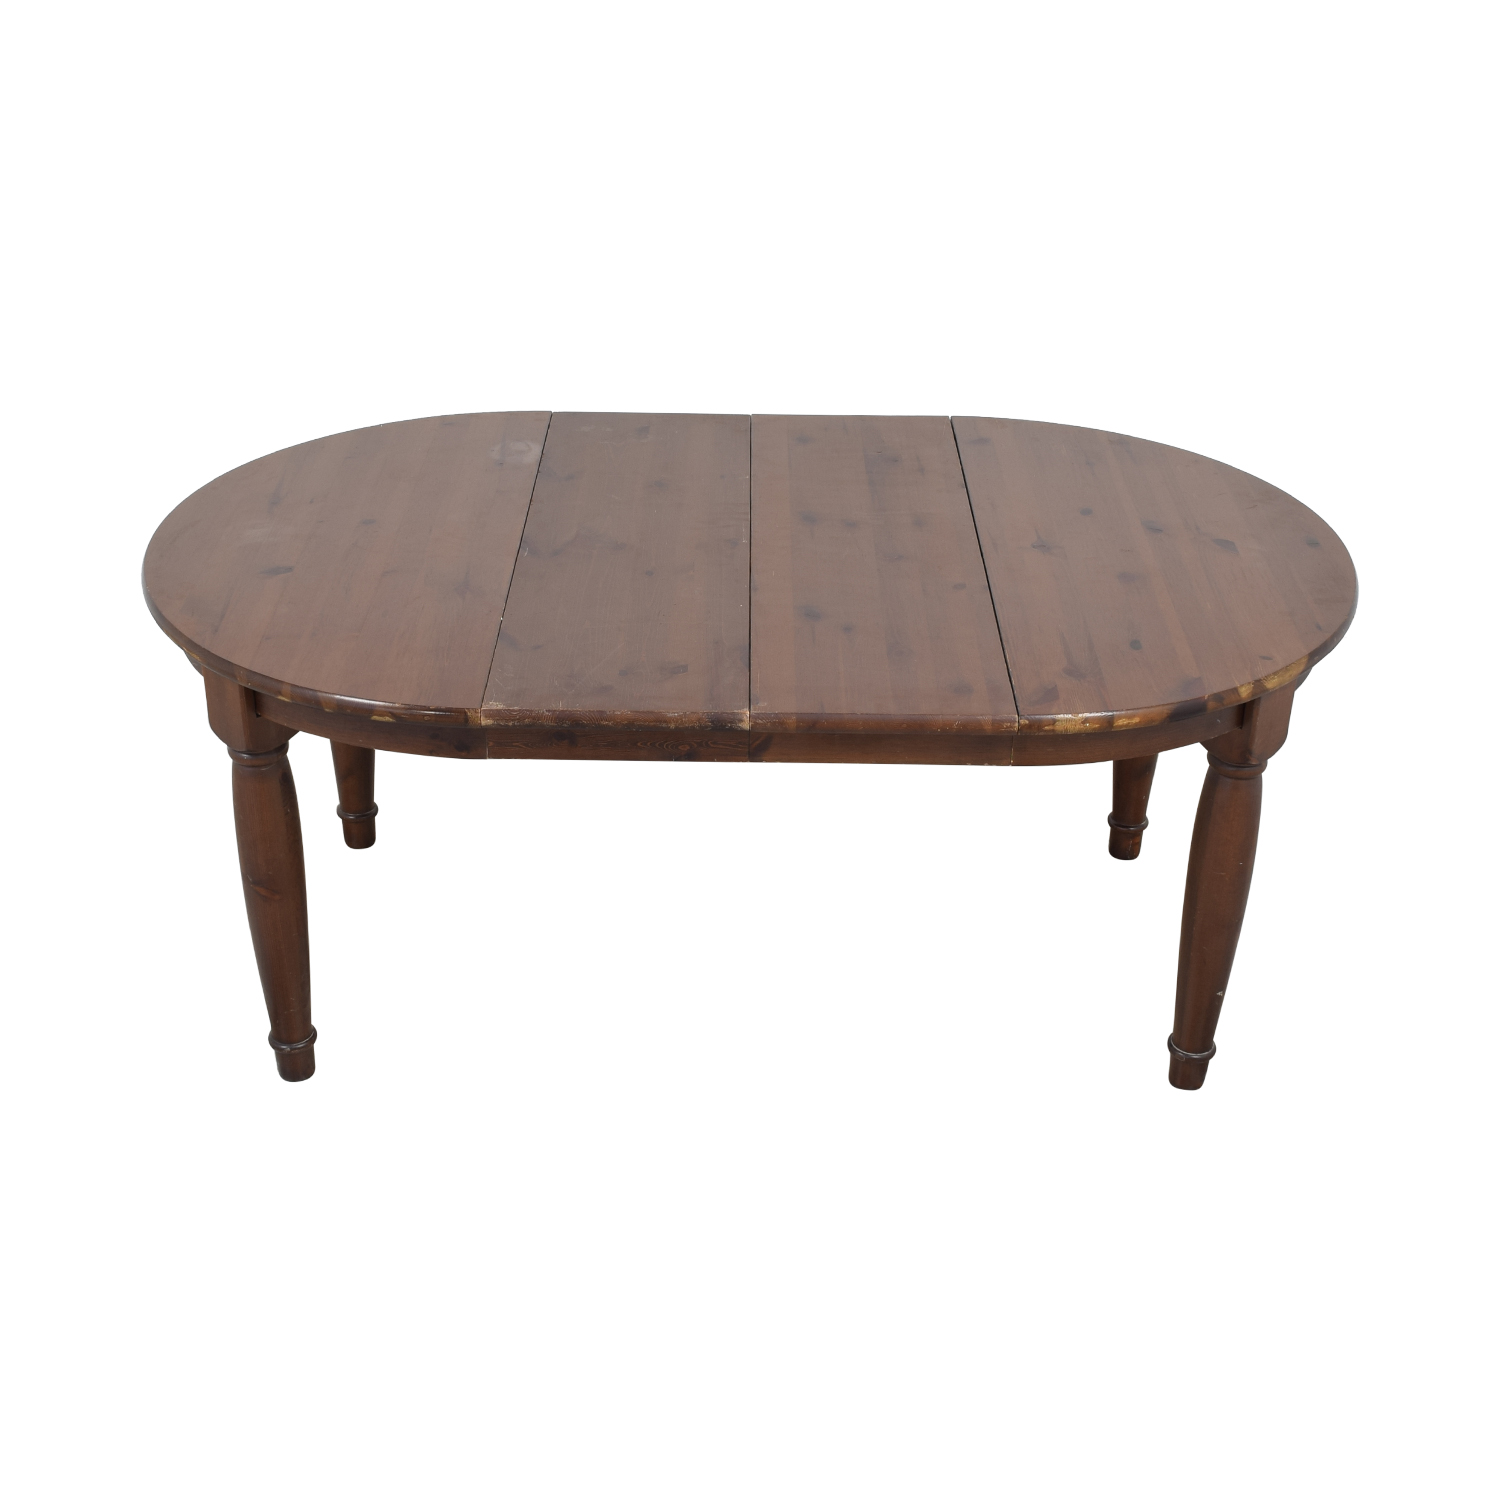 Pottery Barn Pottery Barn Round Extension Dining Table nyc